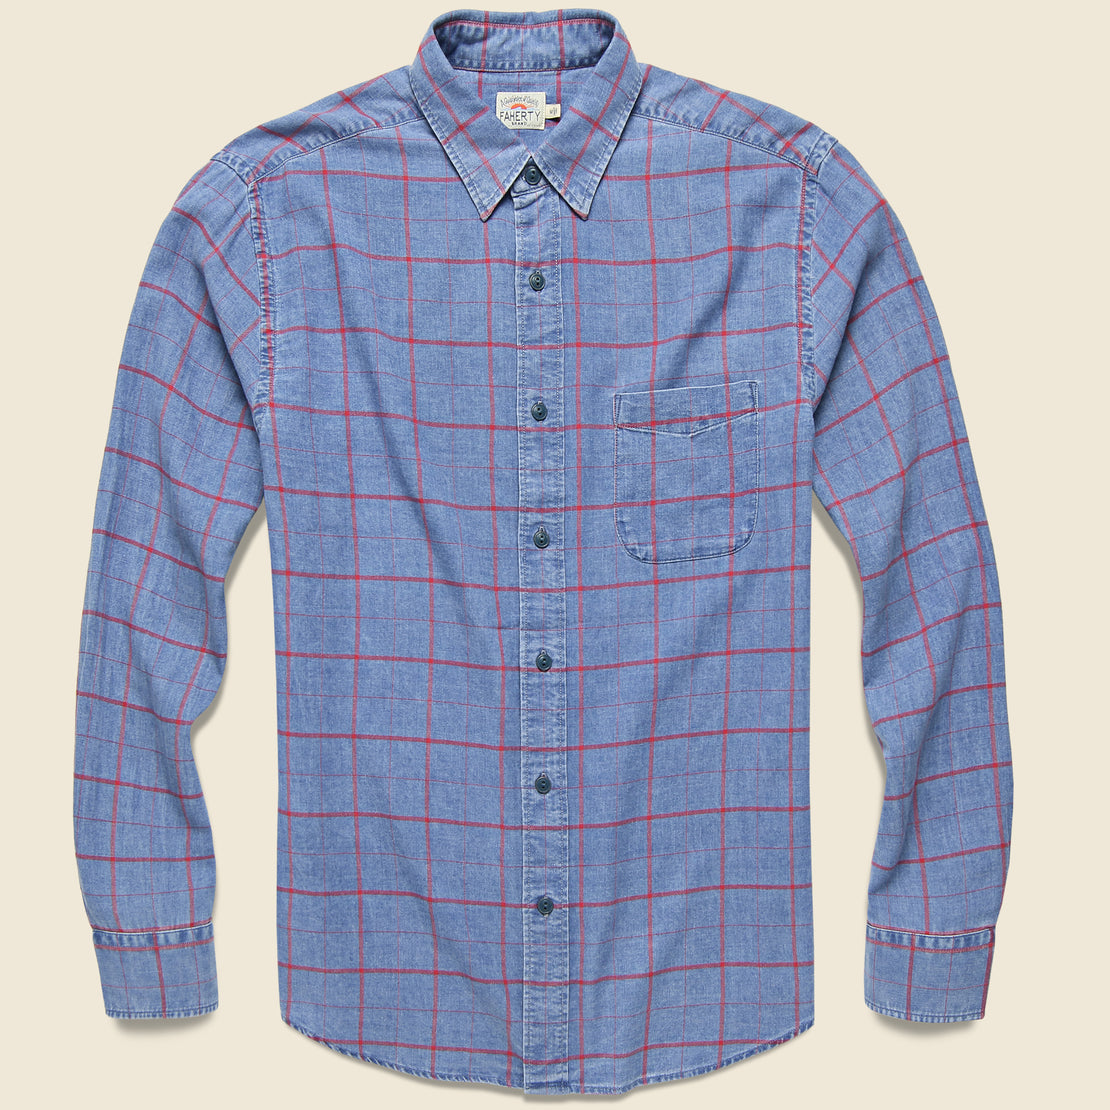 Faherty Ventura Shirt - Washed Red Windowpane